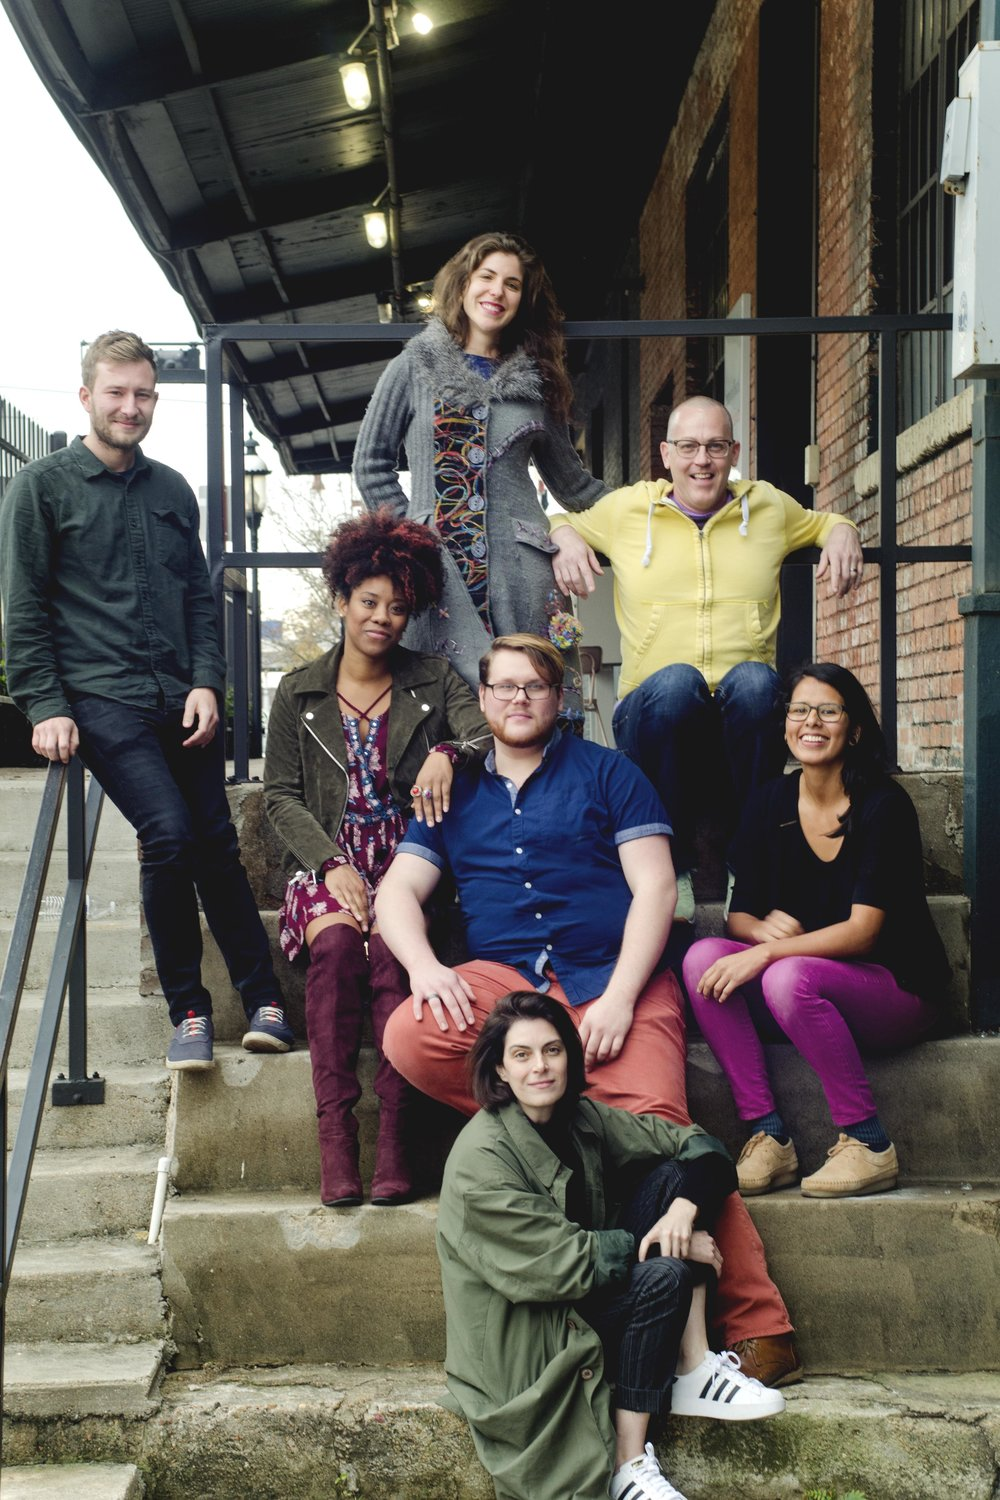 2018 Artists in Residence. (Top row from L to R) Joe Wozny, Daniela Antelo, Jhon Stronks, (Middle row from L to R) Candice D'Meza, Camron Alexander, Brenda Cruz (Bottom row) Nancy Douthey